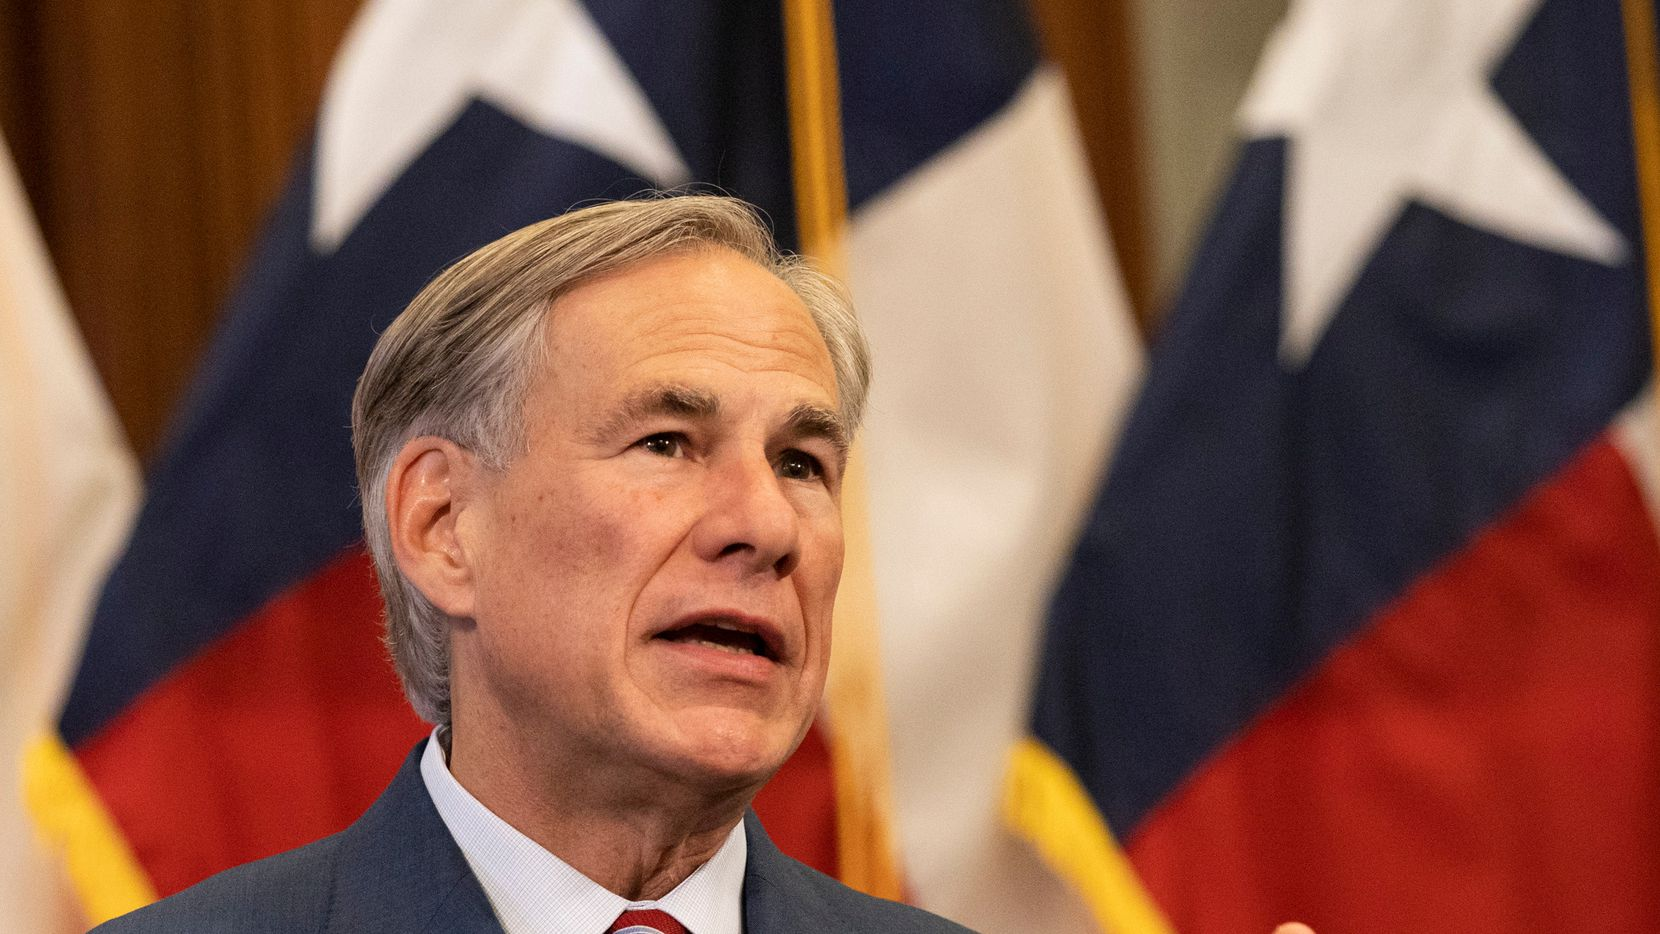 Gov. Greg Abbott, shown as he announced more reopenings last week, urged Texans on Wednesday to consider having elective surgeries and procedures done this summer. Doing so would let the state -- if coronavirus cases spike -- again shut off non-emergency work to free up hospital beds, he said.